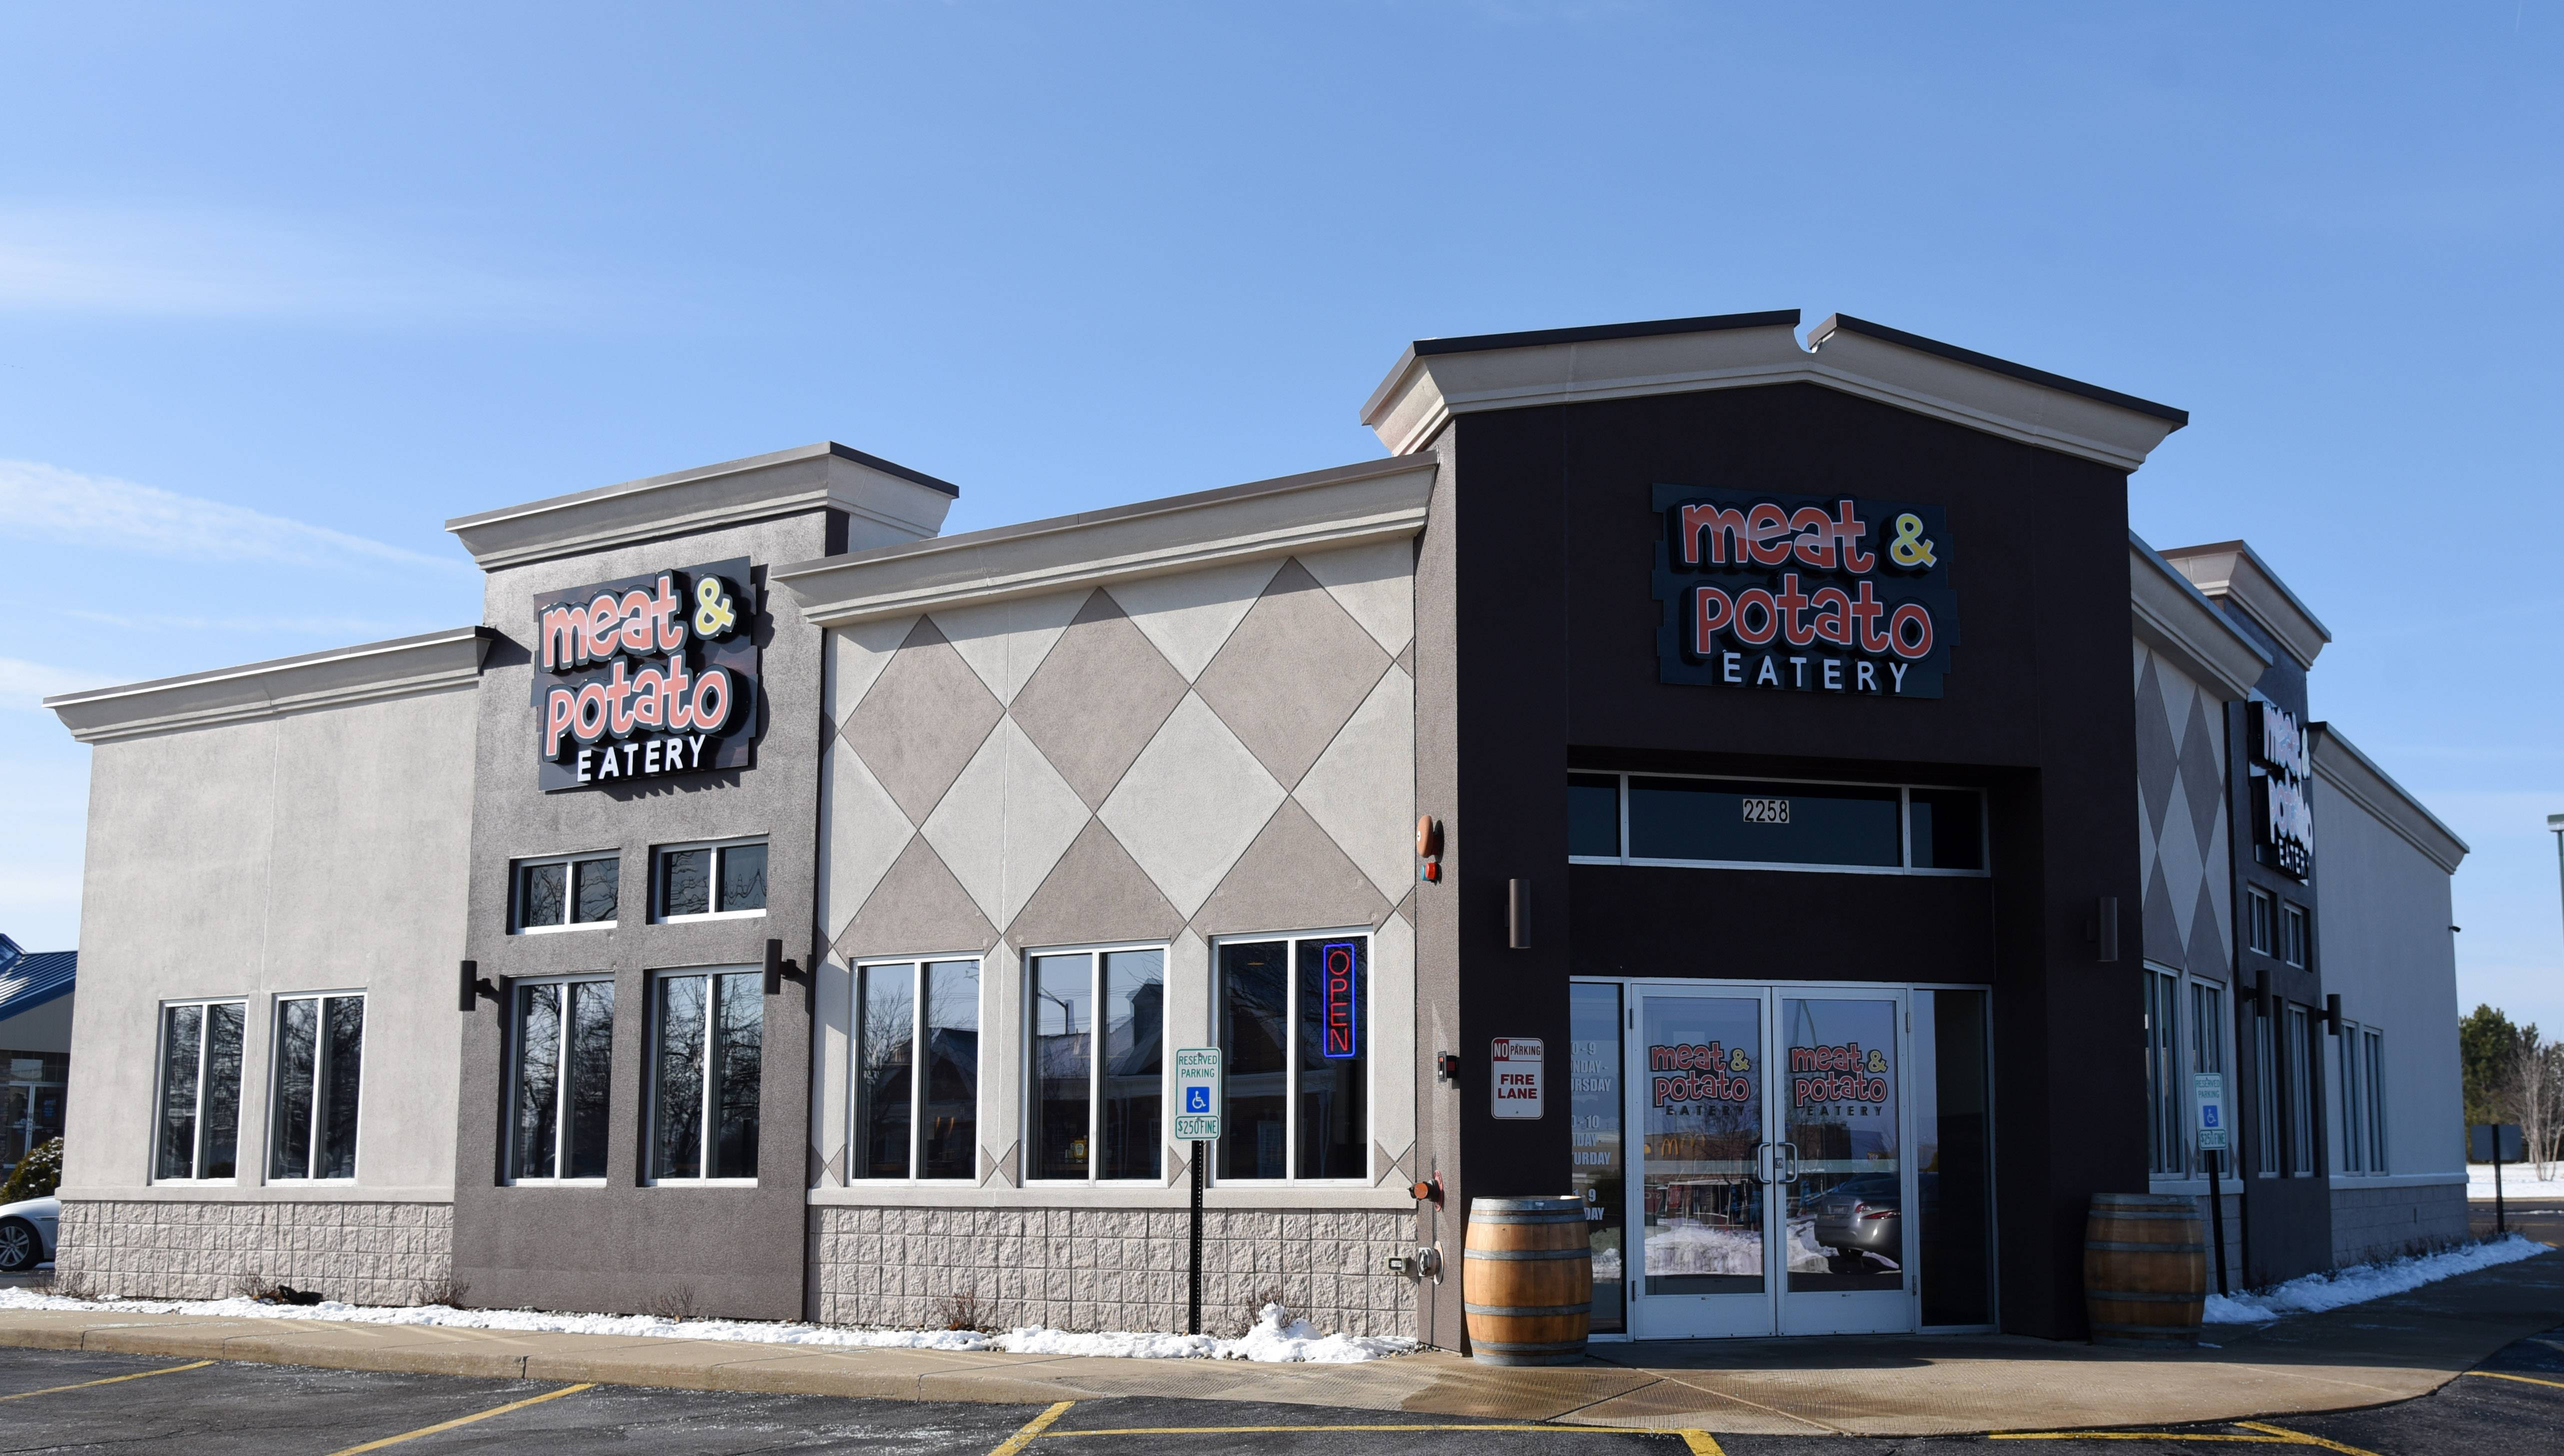 Meat & Potato Eatery, which last year opened this location in Carpentersville, received approval this week to open its fourth suburban restaurant in the Wheeling Town Center.